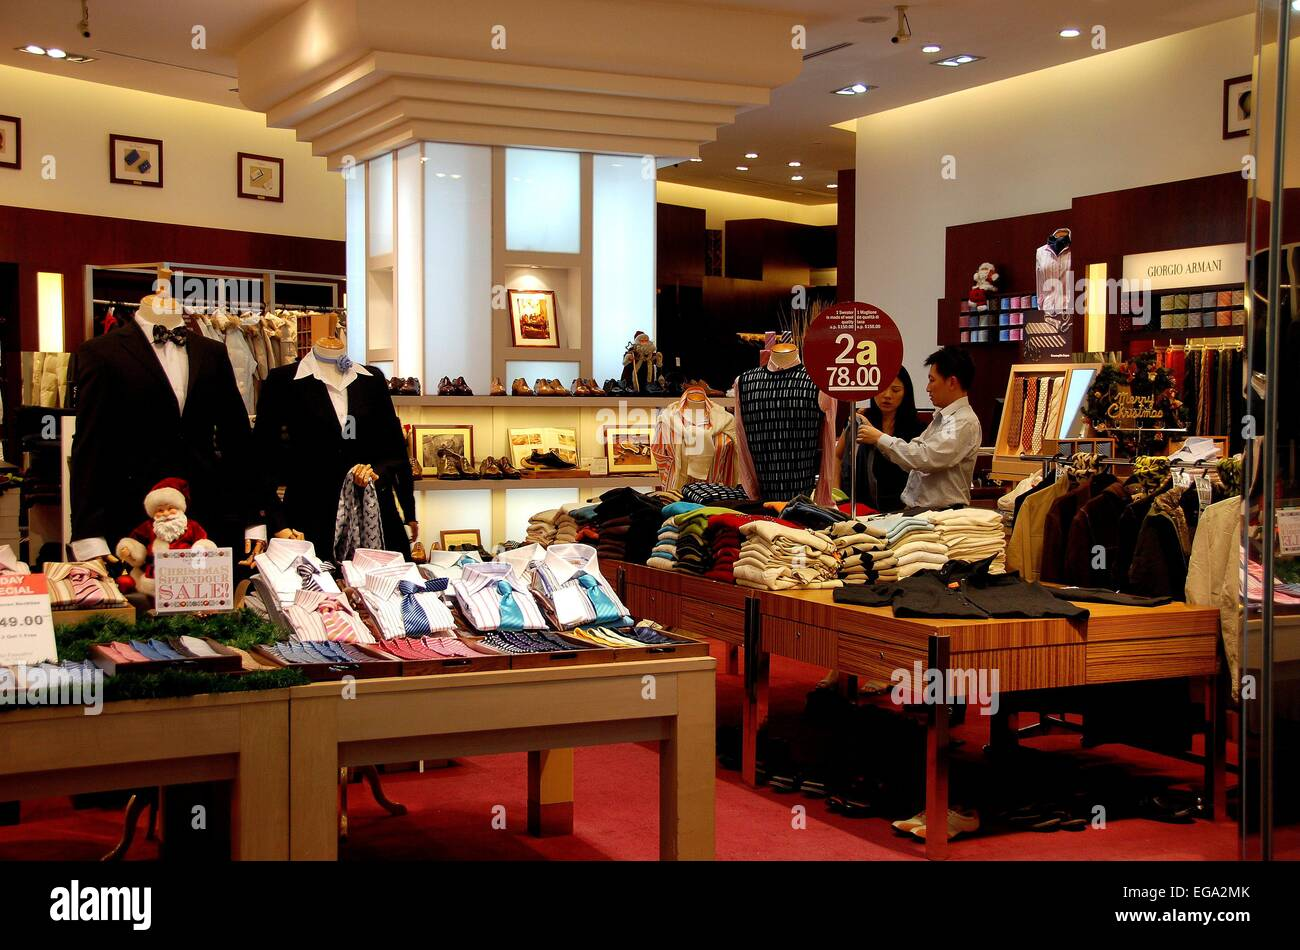 2f9312856e33 Singapore: Sales clerk with customer at an upscale men's clothing shop at  the Raffles City